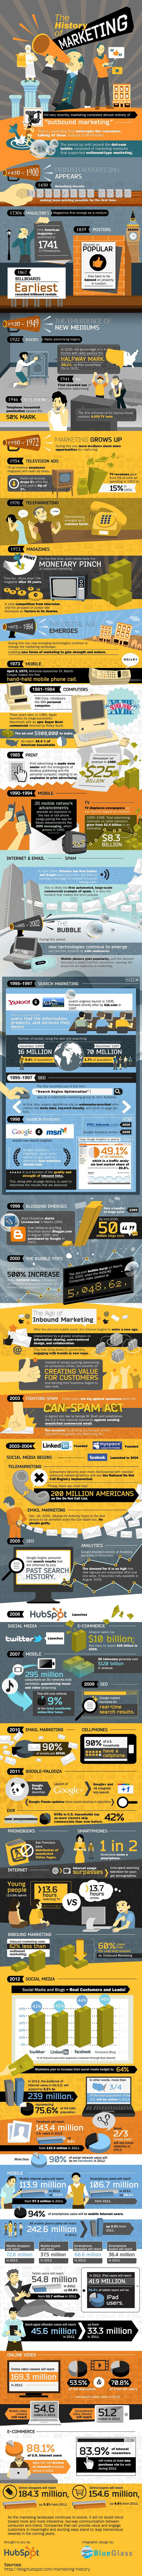 a  kind of  brief history of marketing  infographic